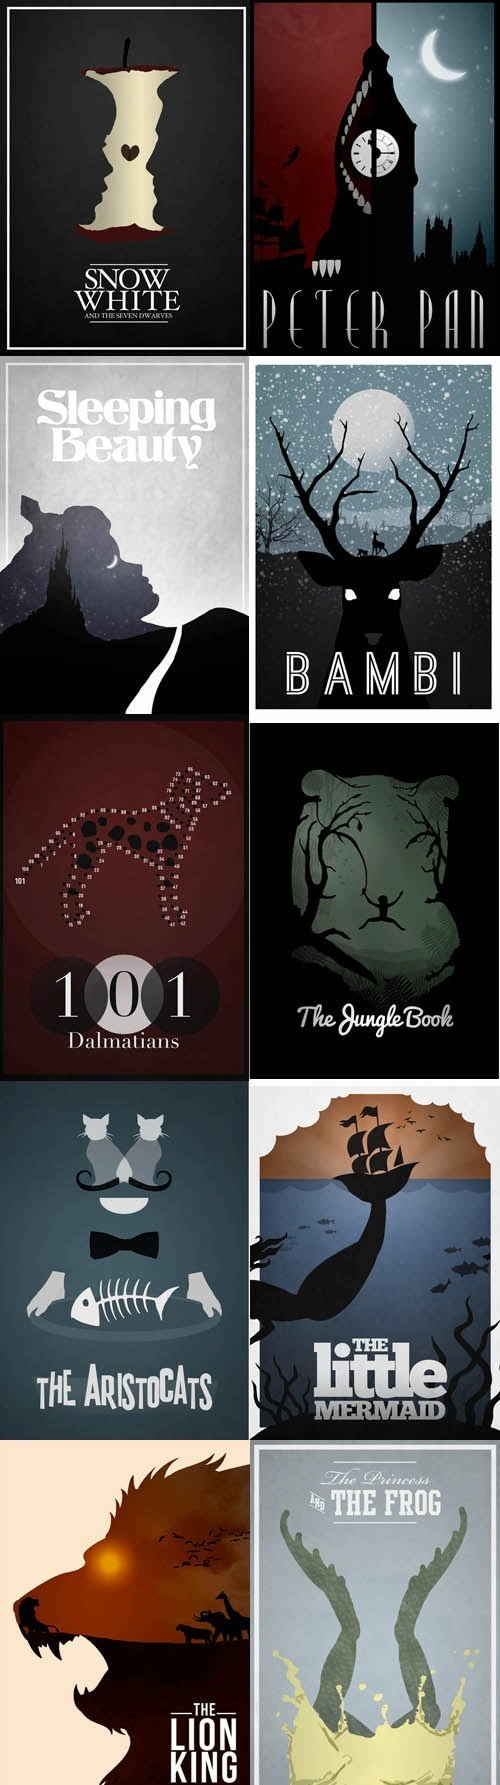 Minimalist Disney Movie Posters